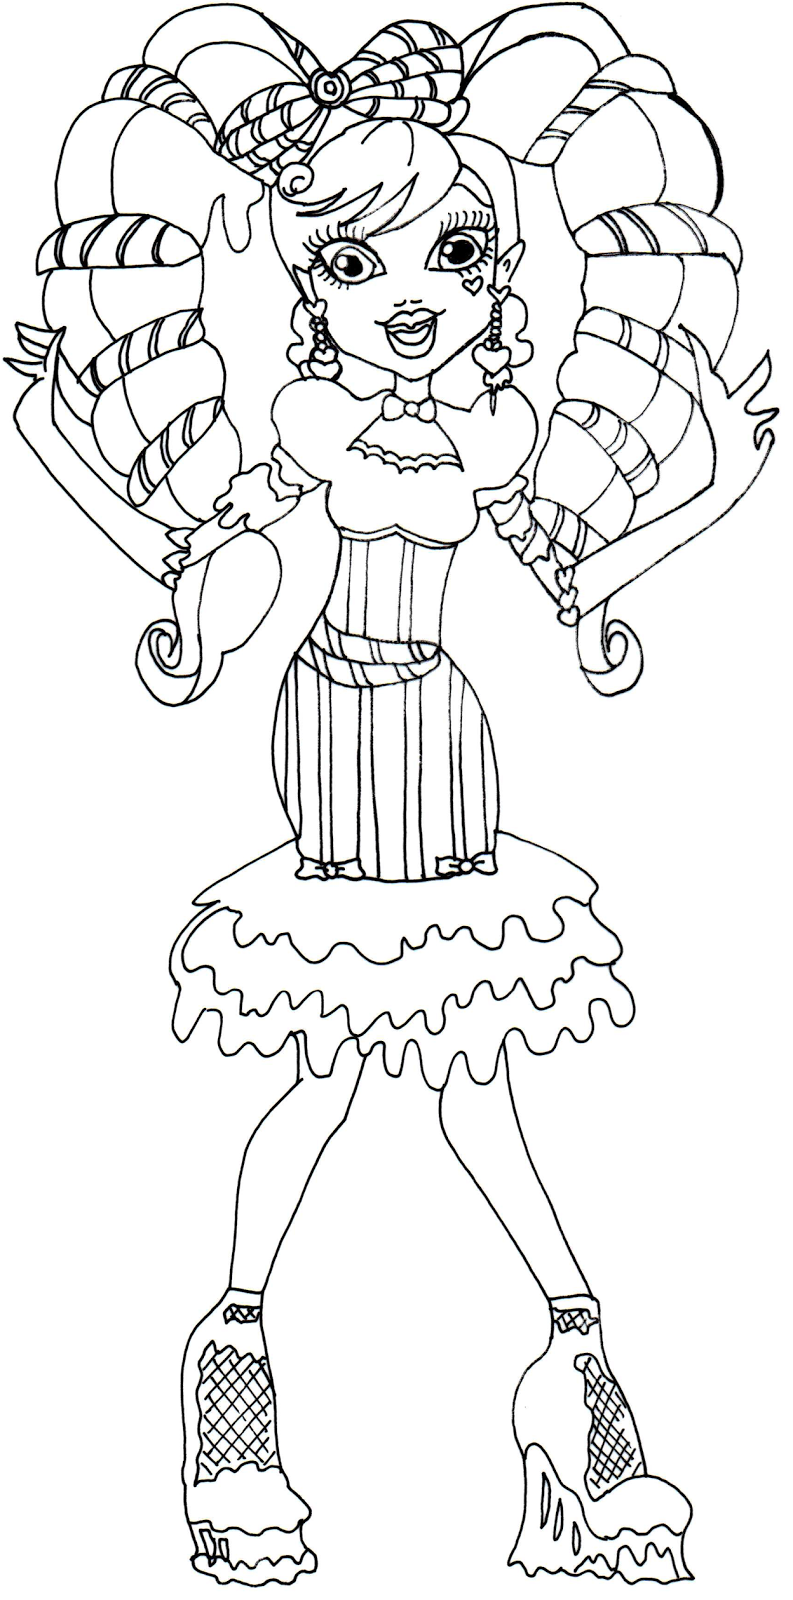 Free Printable Monster High Coloring Pages: Draculaura Sweet ...